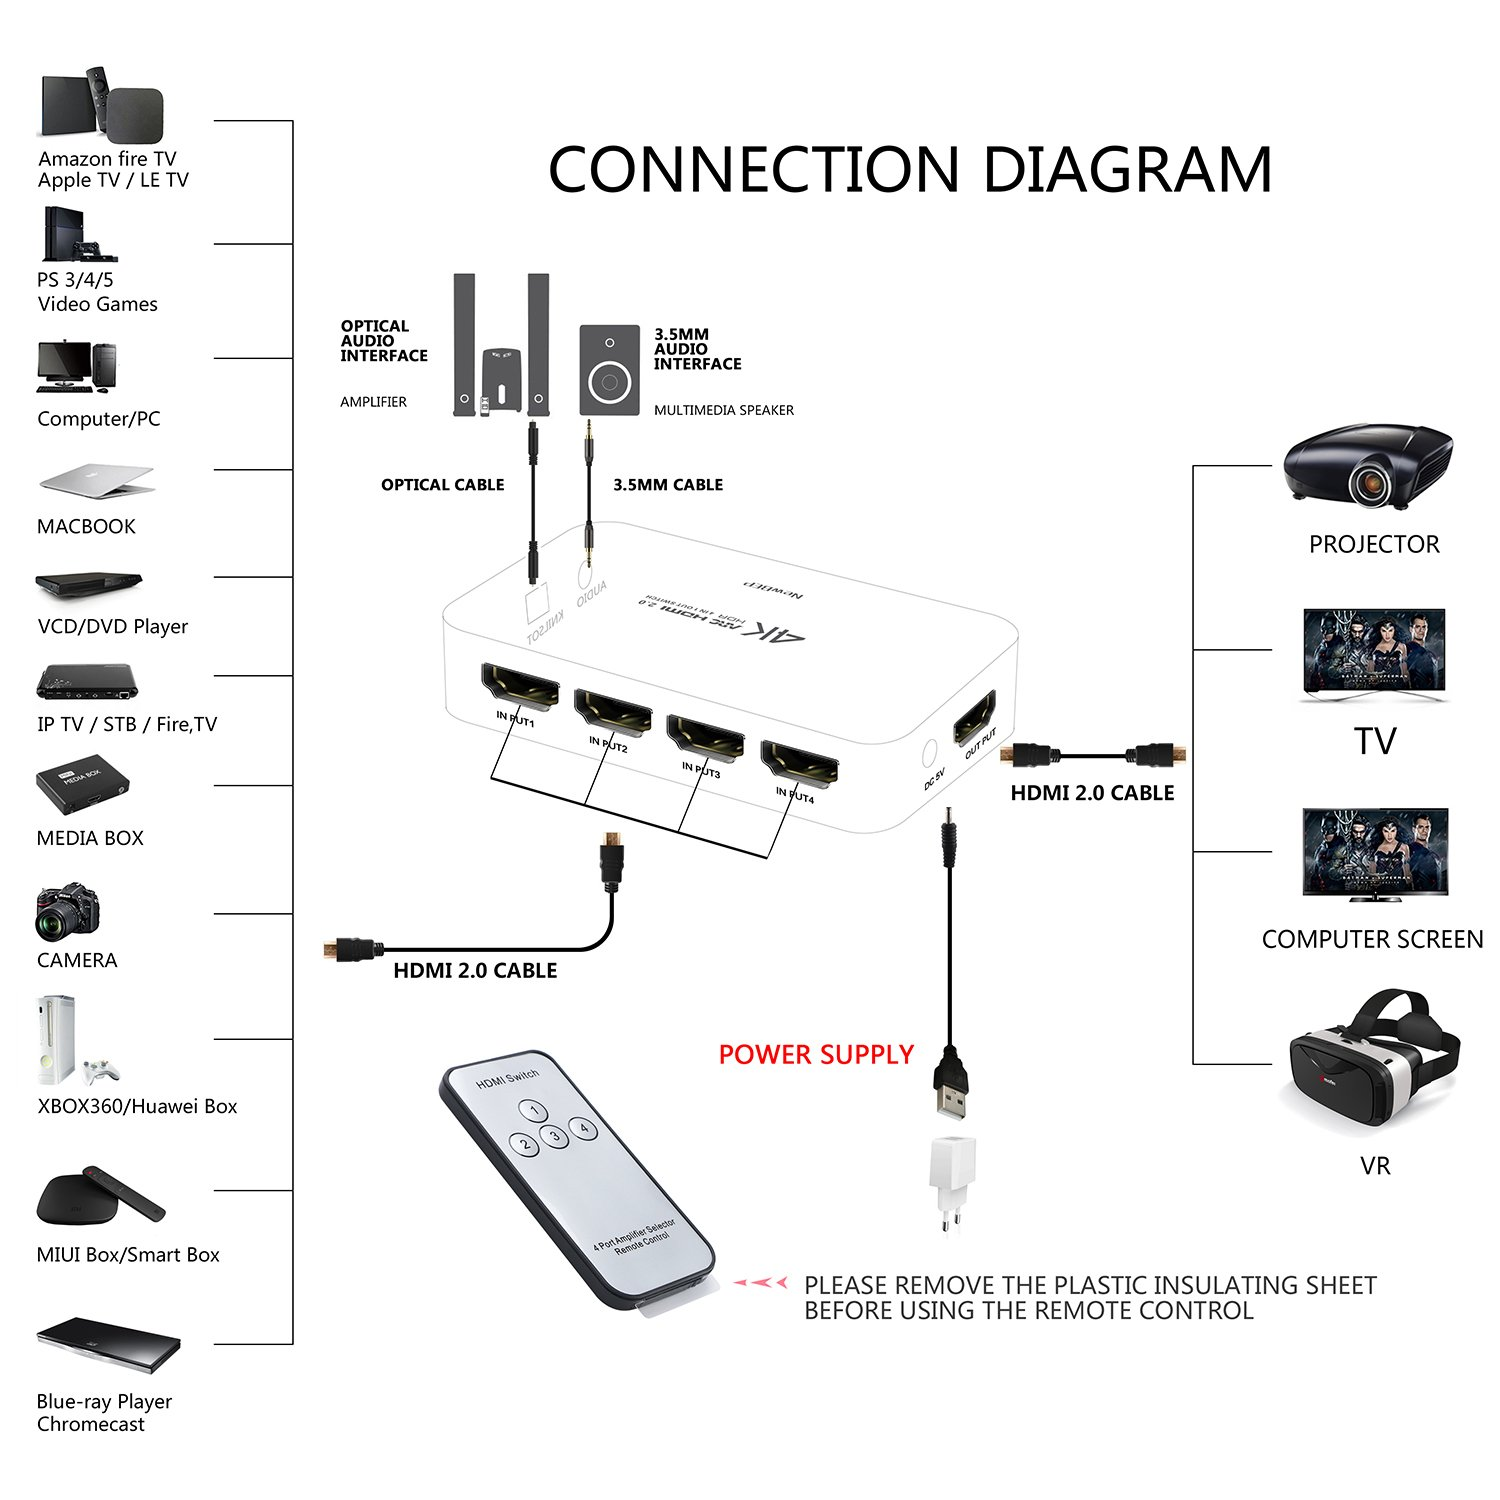 4k Hdmi Wire Diagram Wiring Will Be A Thing 3 5mm 2 0 Cable Diagrams Layout Connectors And